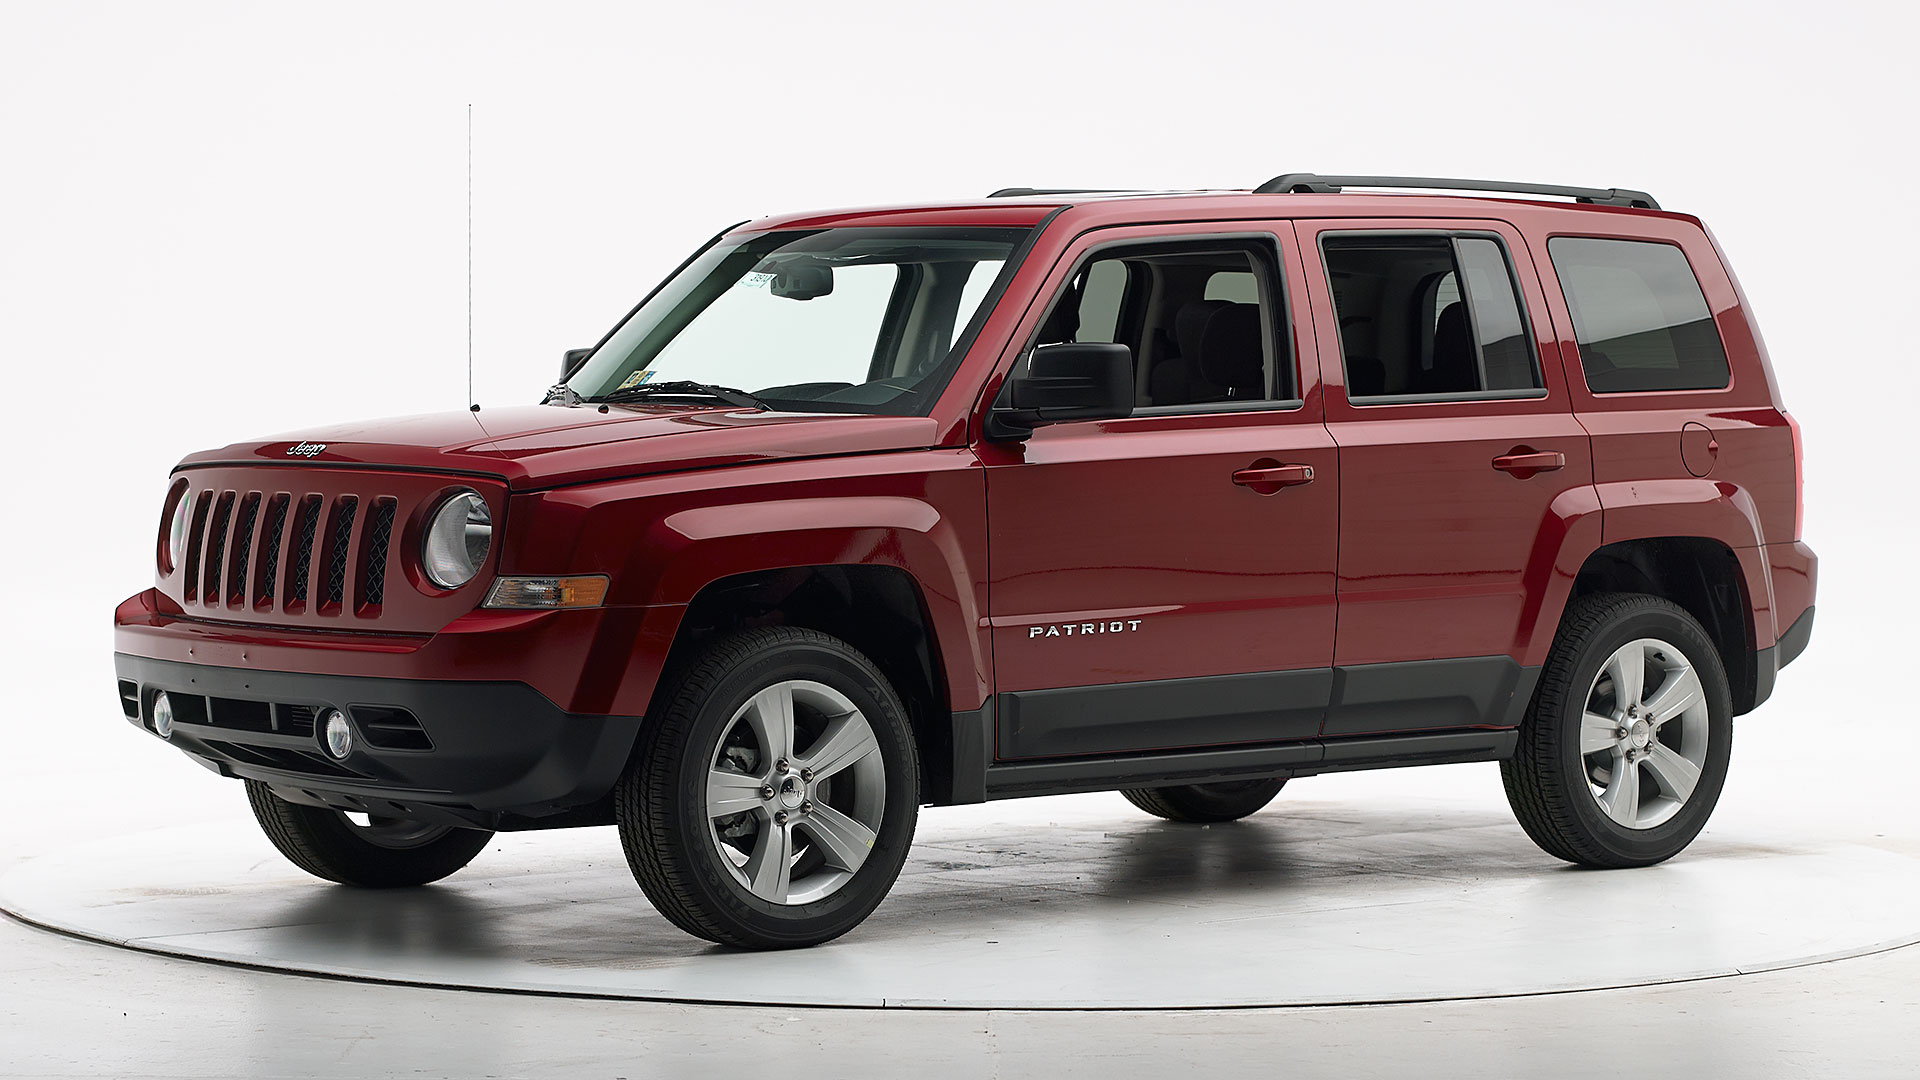 2016 Jeep Patriot 4-door SUV